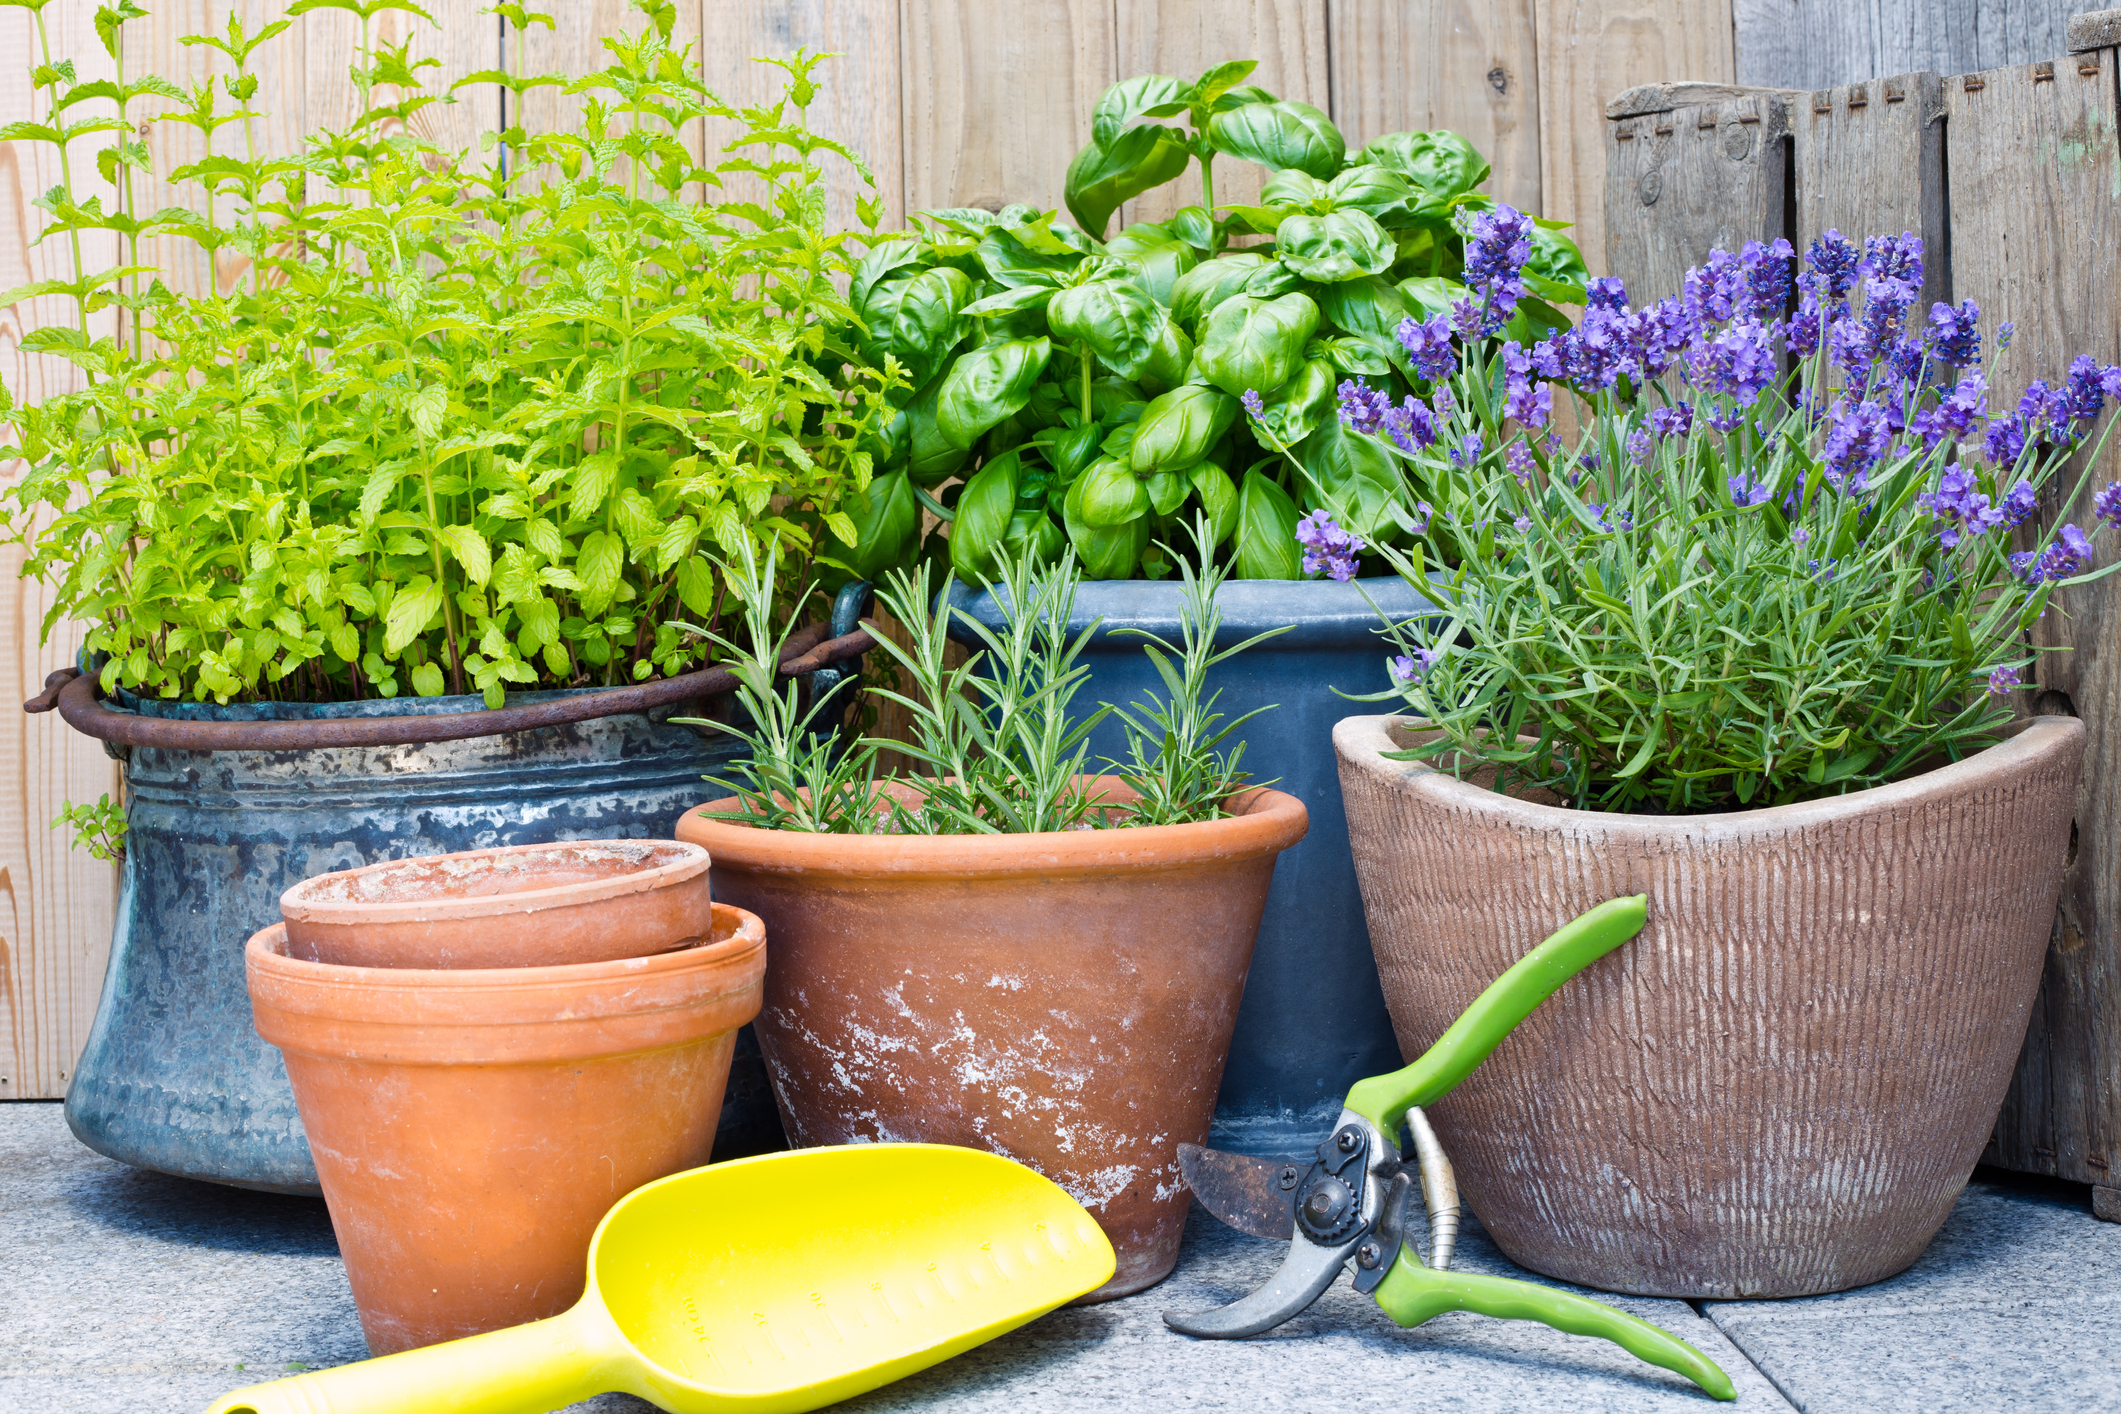 Small clay pots are perfect for growing herbs indoors. Get ones that fit on your window sills or consider hanging pots to accommodate growing more herbs. Since herbs are consistently snipped for cooking purposes, smaller pots are fine.